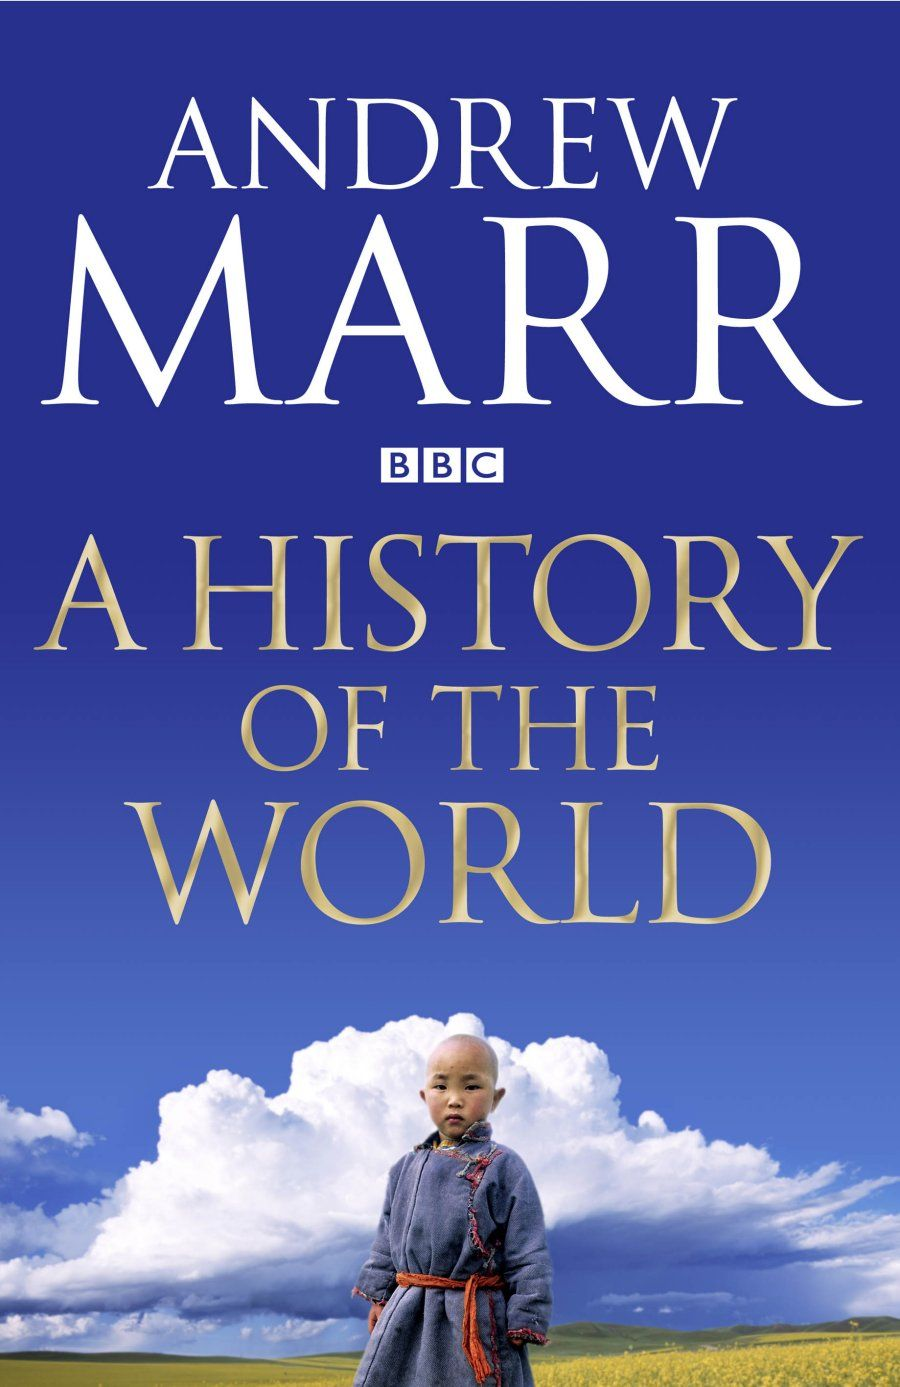 A History of the World - PDF | Books | Nonfiction books, Books